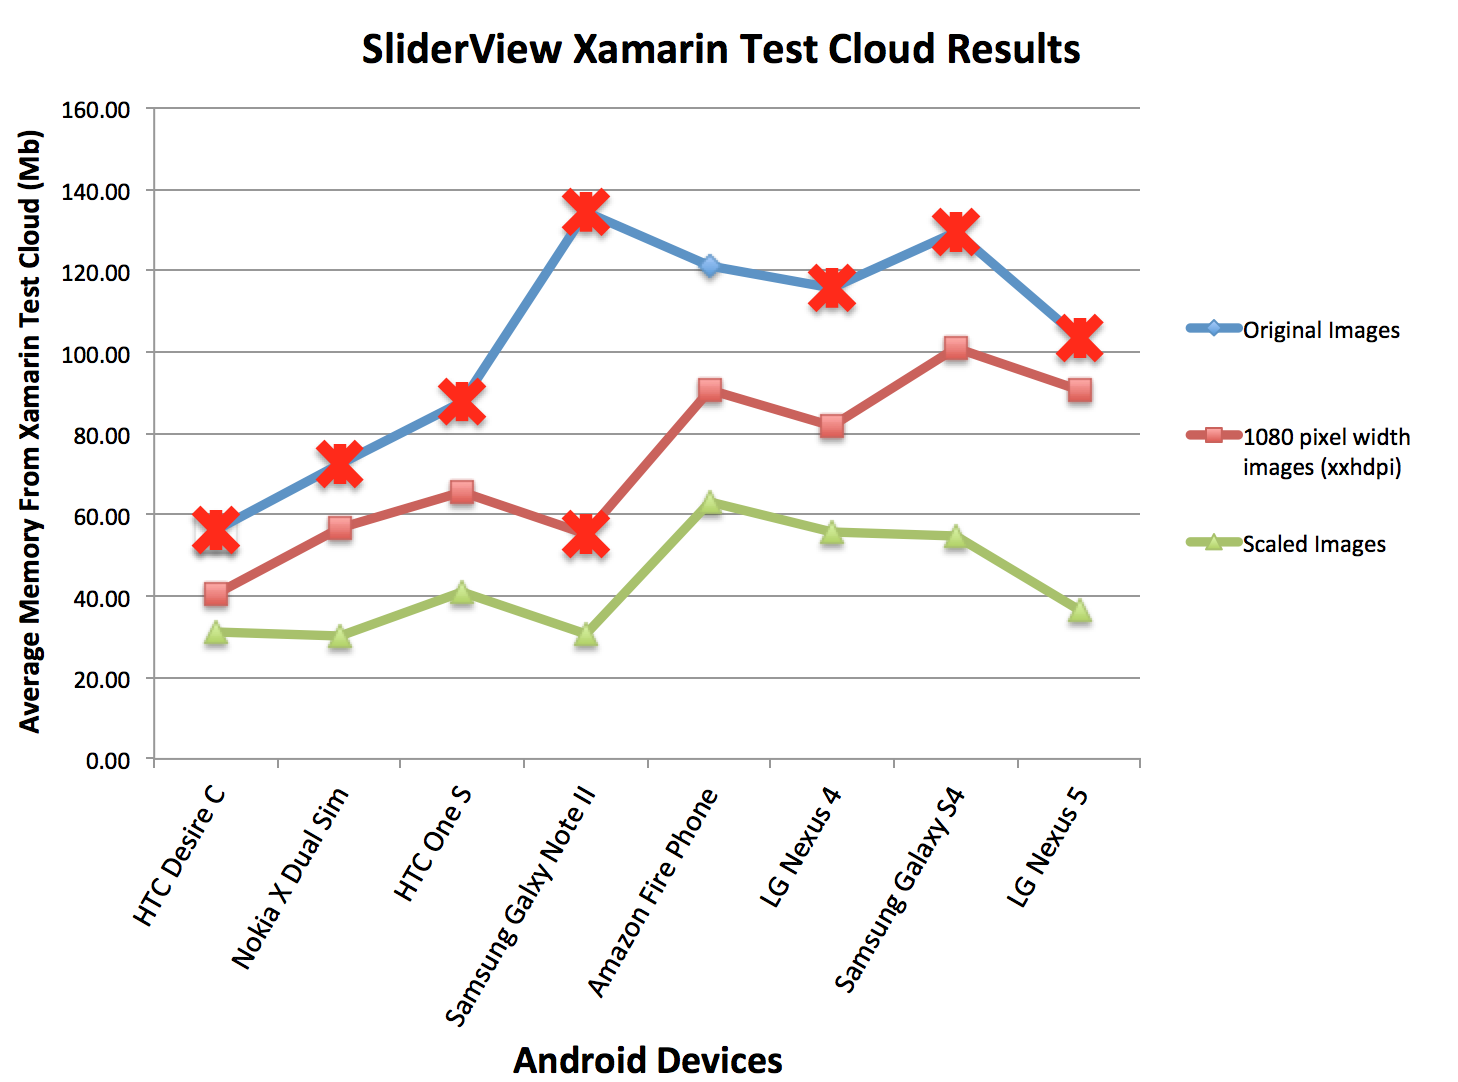 SliderView Xamarin Test Cloud Results